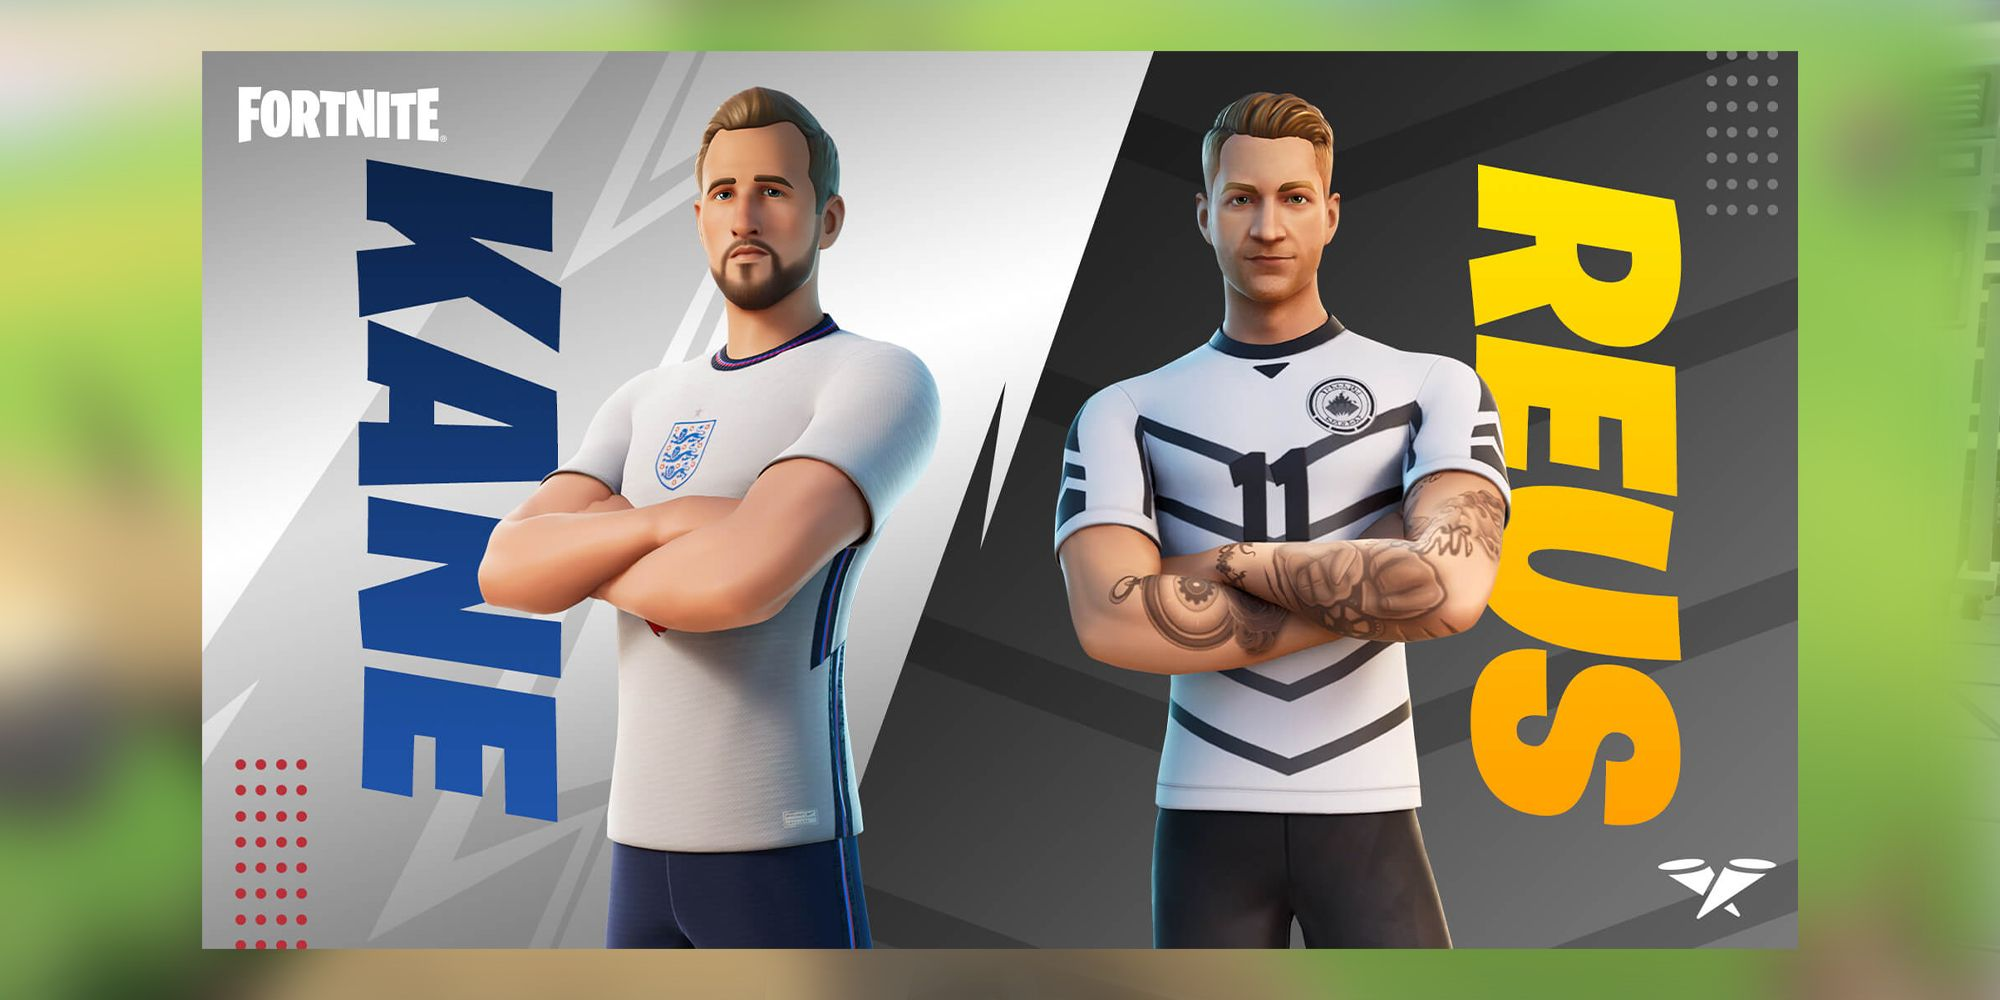 Fortnite: How to Get the Harry Kane & Marco Reus Skins